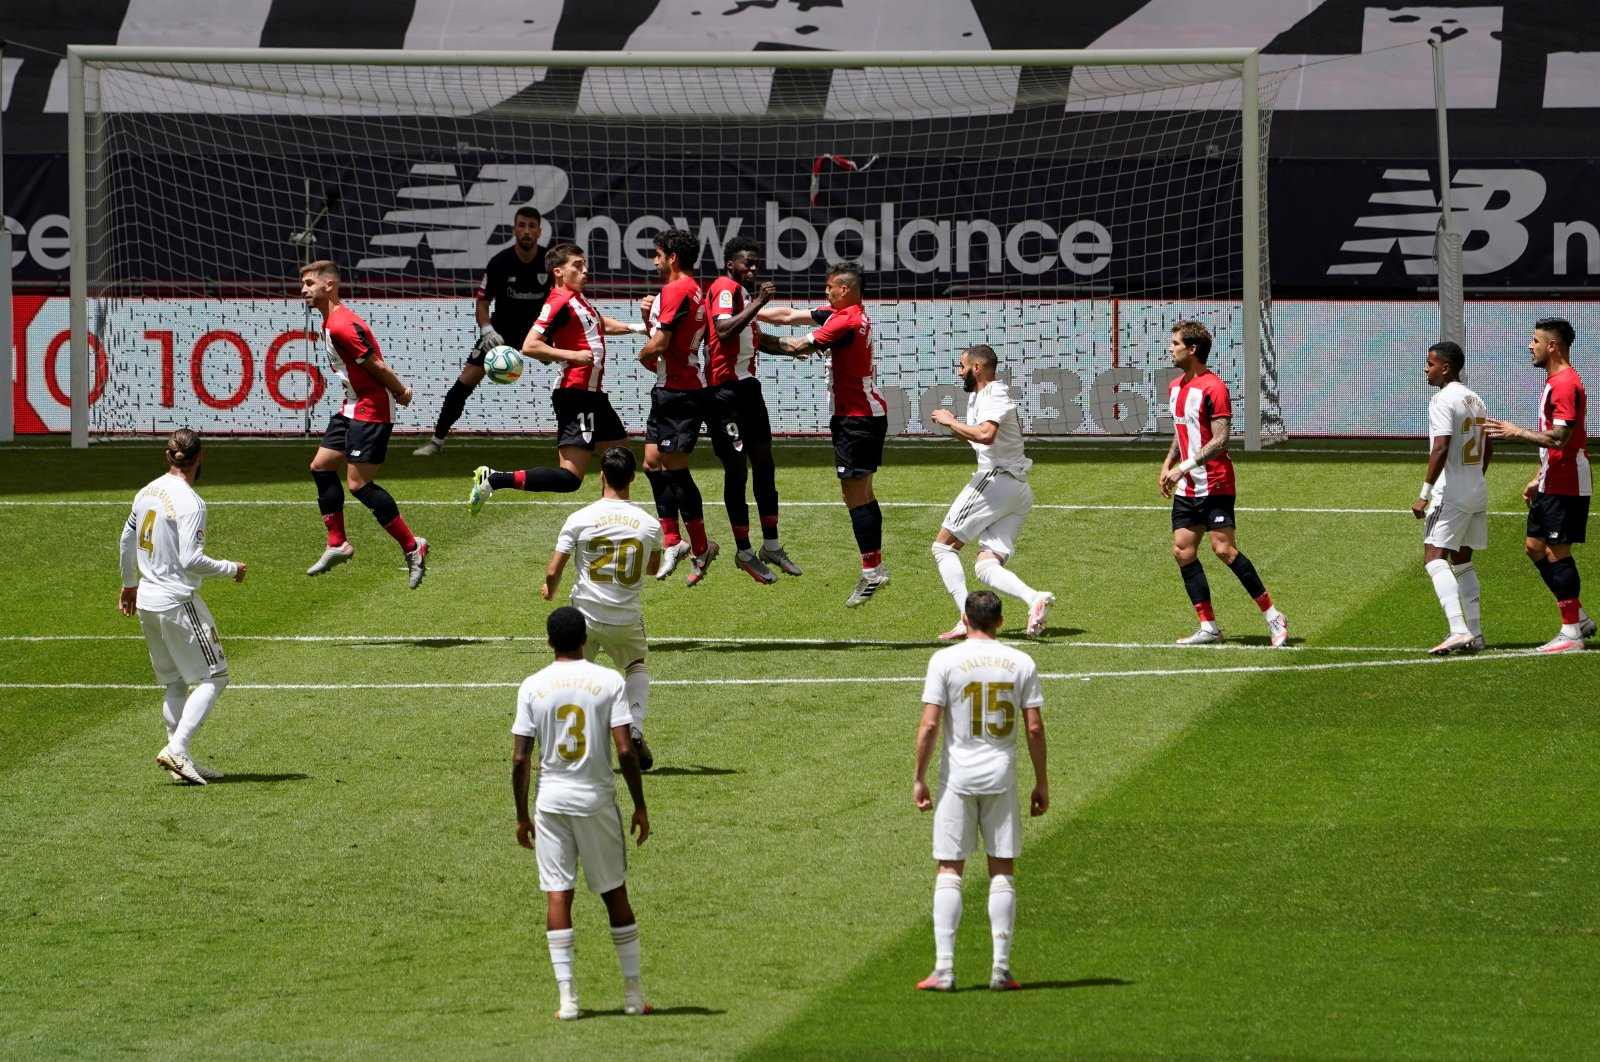 Real Madrid's Marco Asensio takes a free kick in the match against Athletic Bilbao, in Bilbao, Spain, July 5, 2020. (REUTERS Photo)